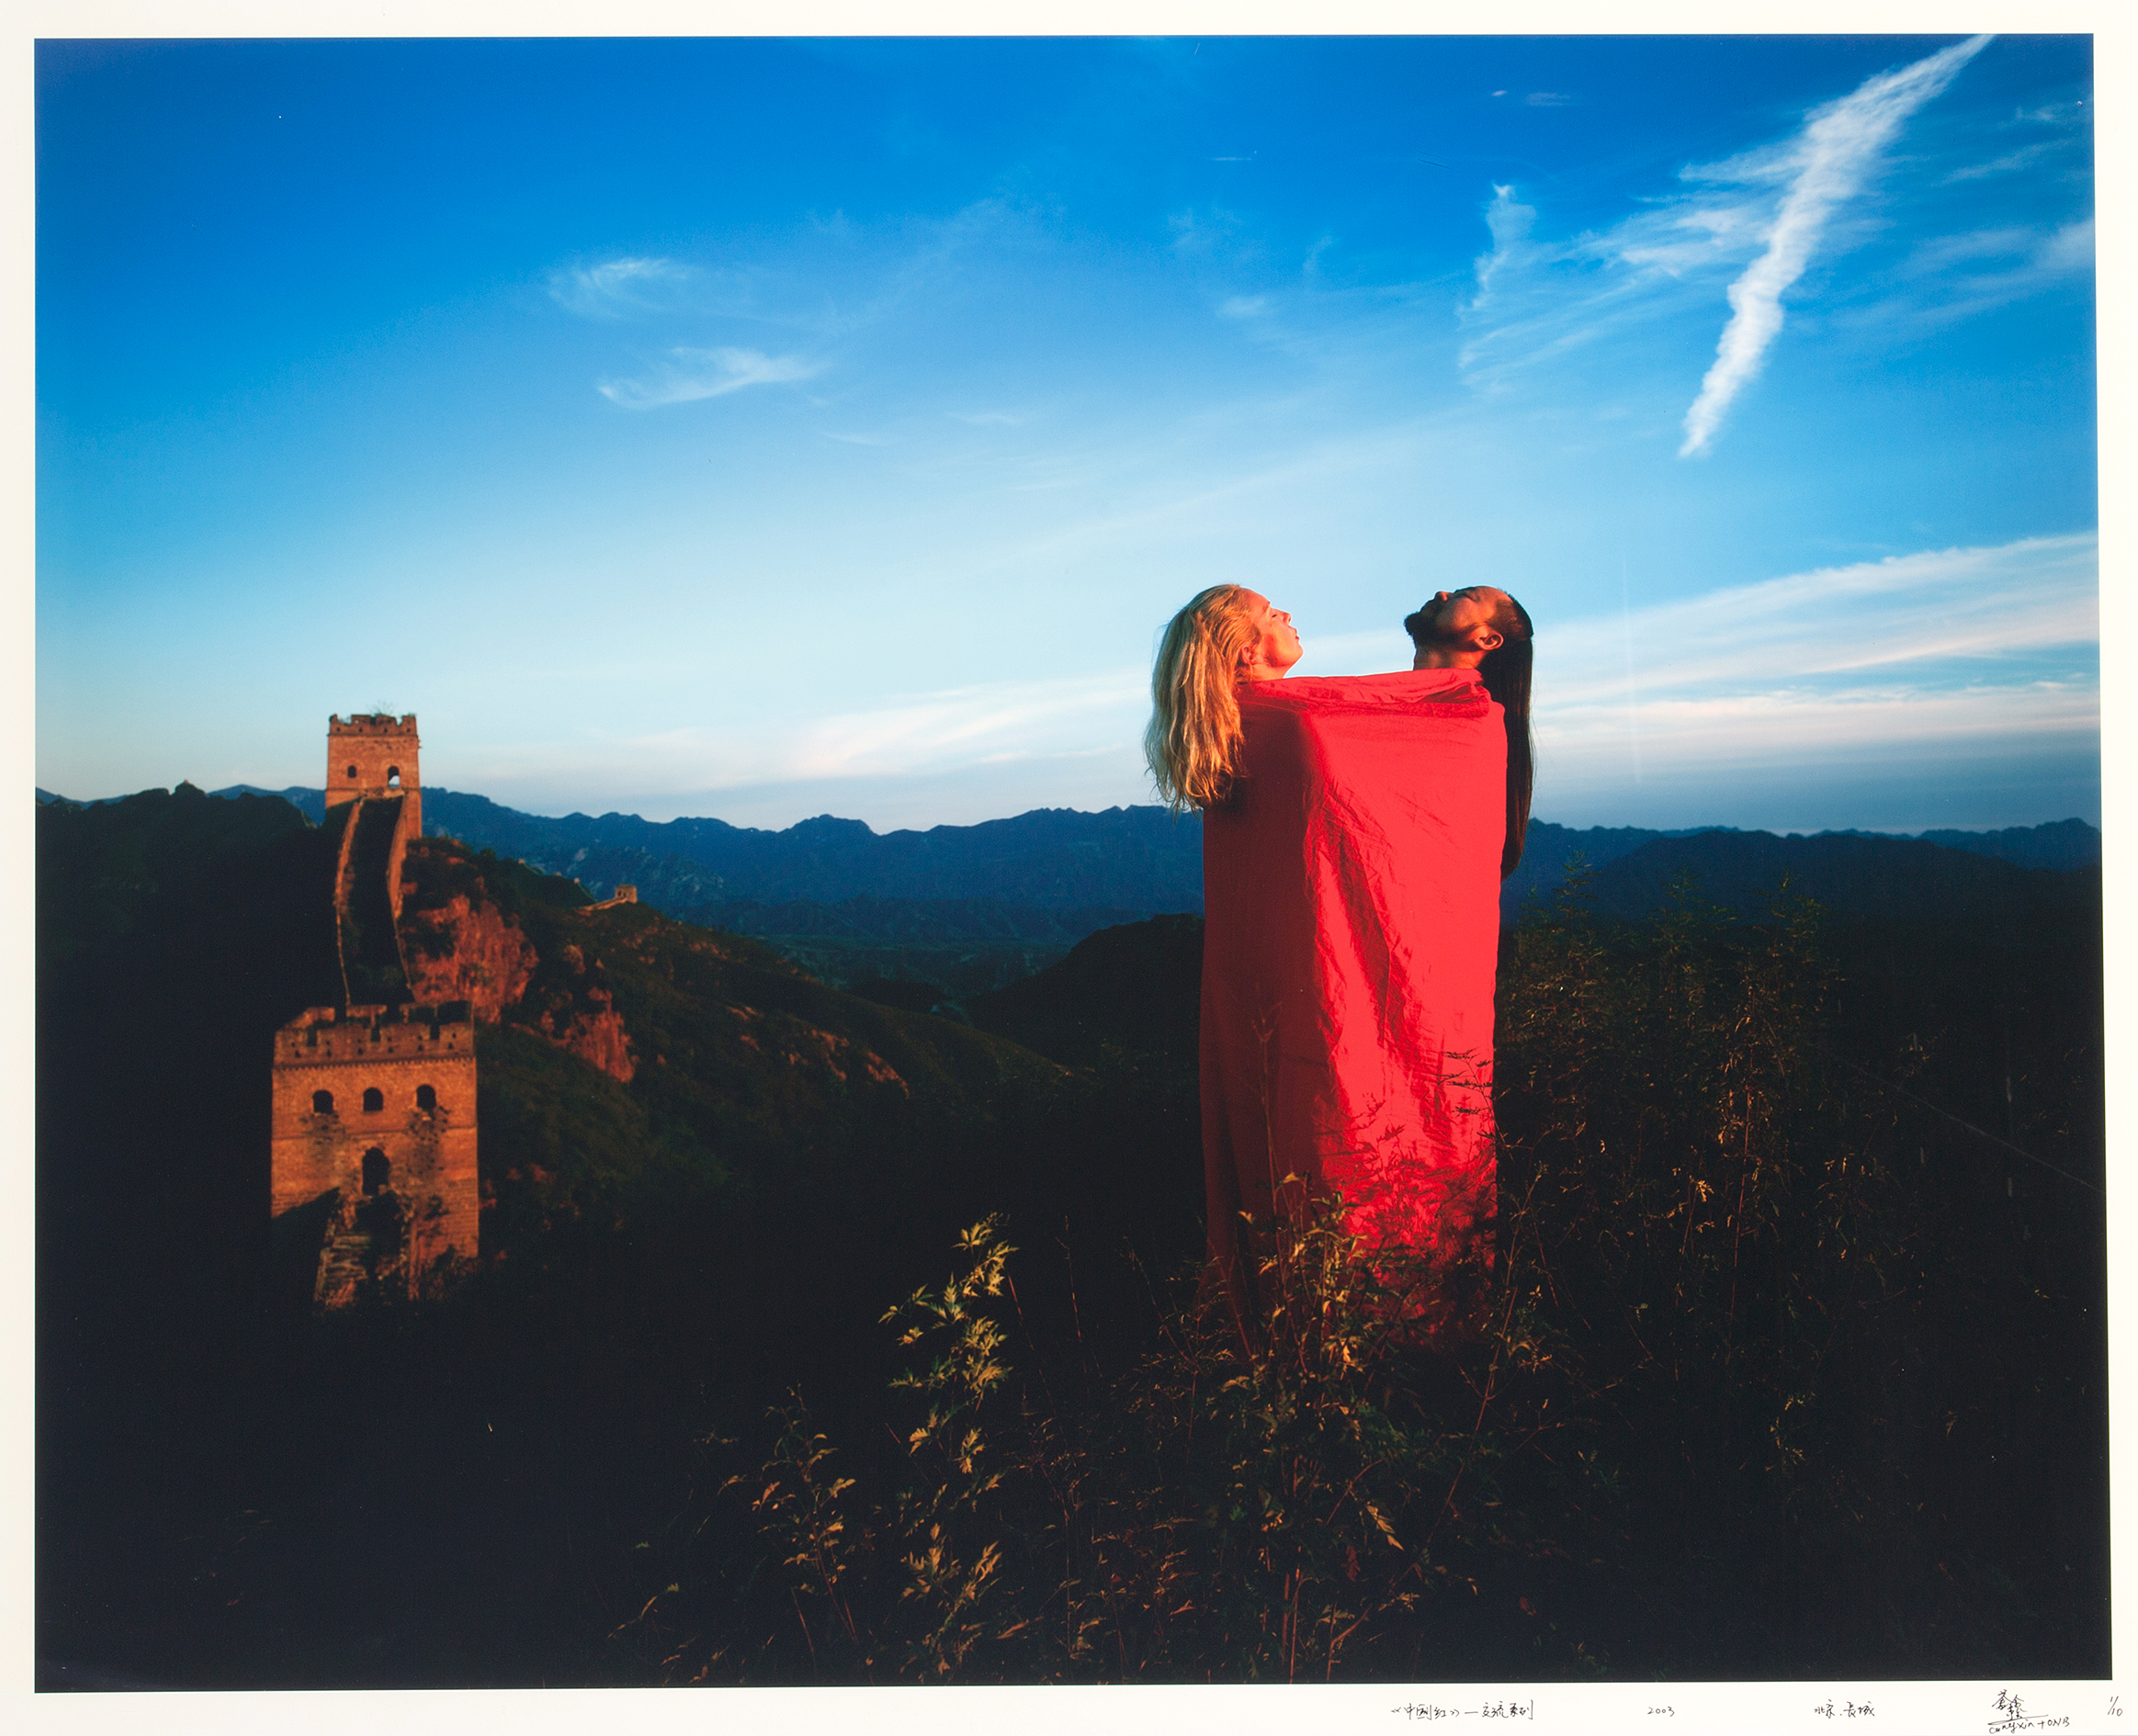 Cang Xin, Introject series no.1, China Red. 2003 ed 1/10 85x105cm.